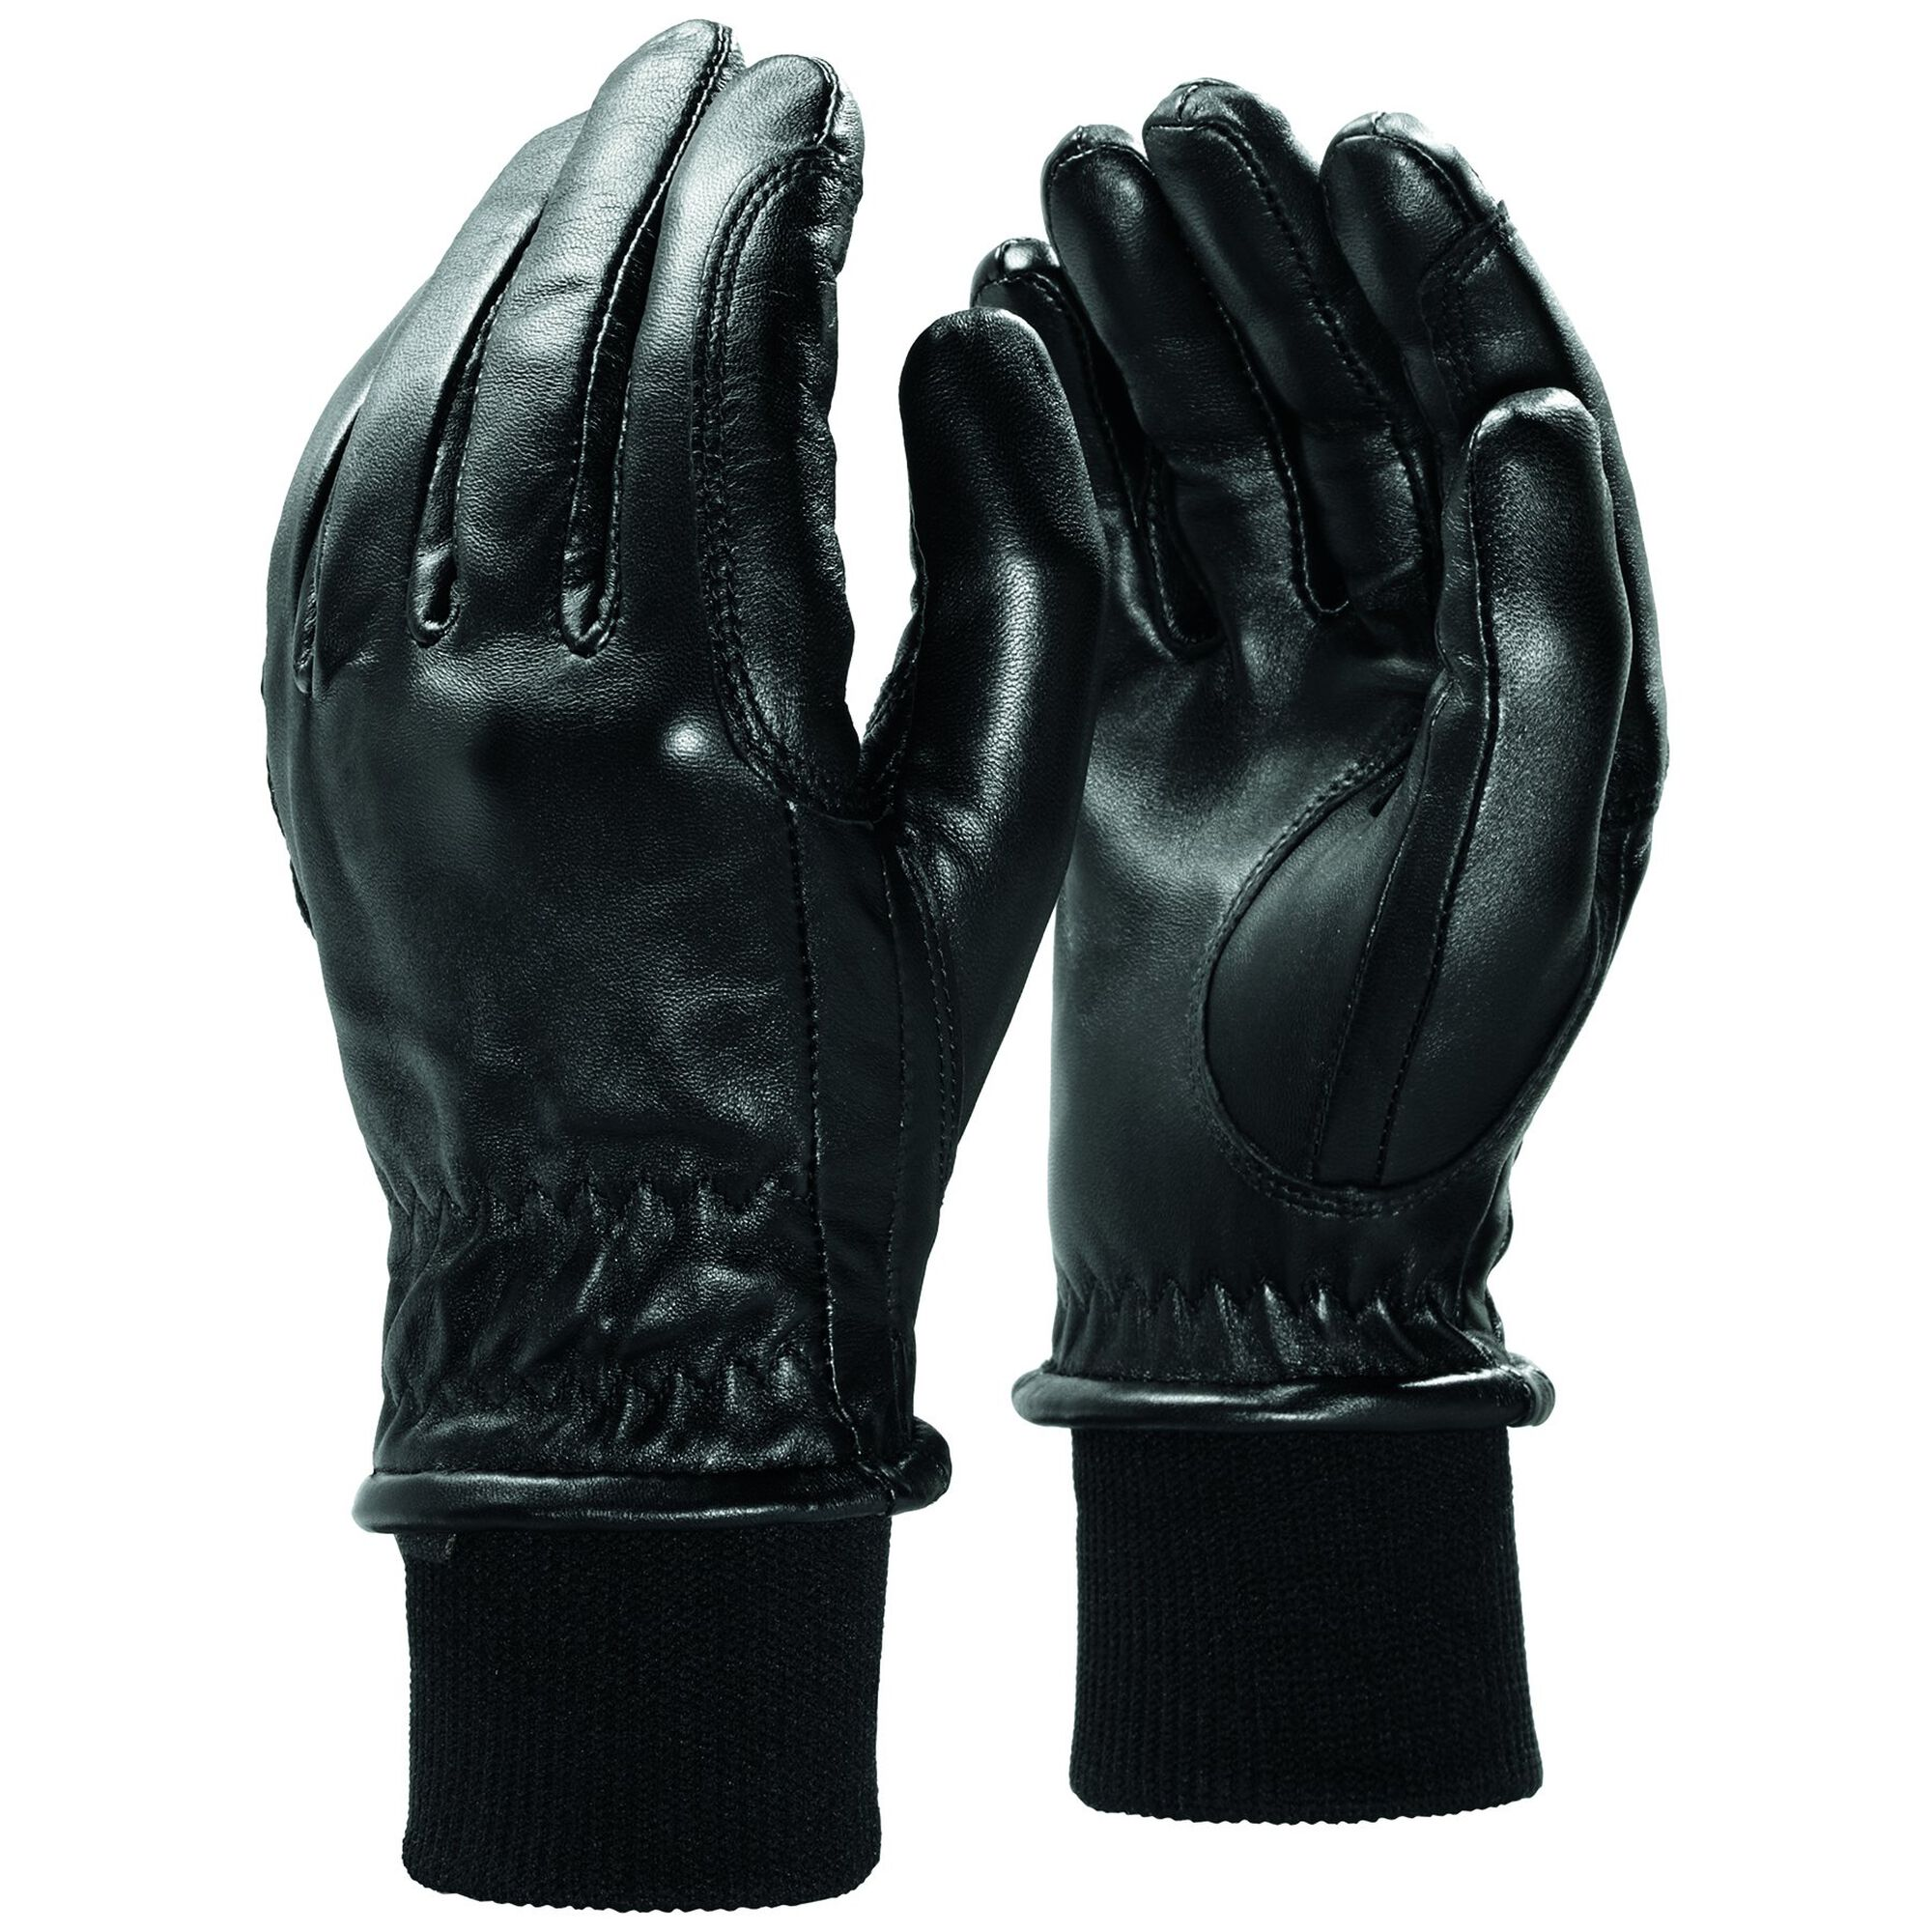 Insulated Pro Grip Glove